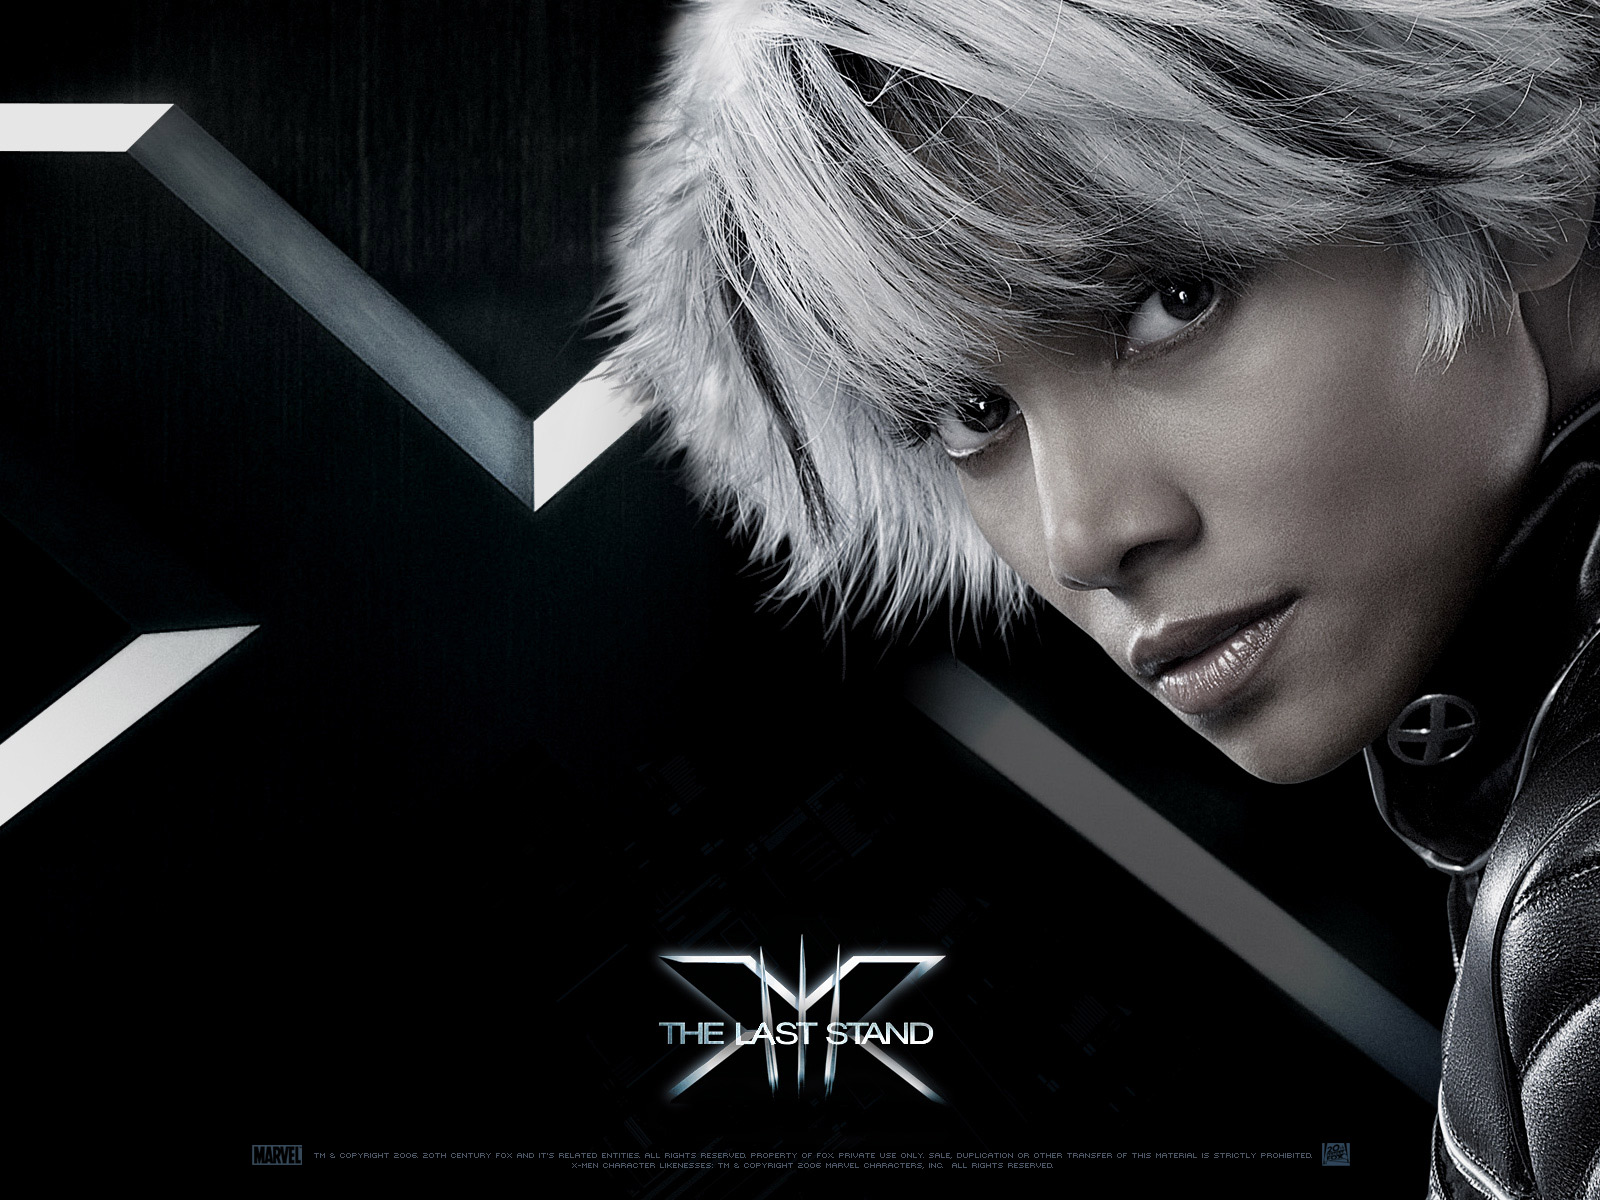 Wallpaper Tornade Storm Halle Berry X-men